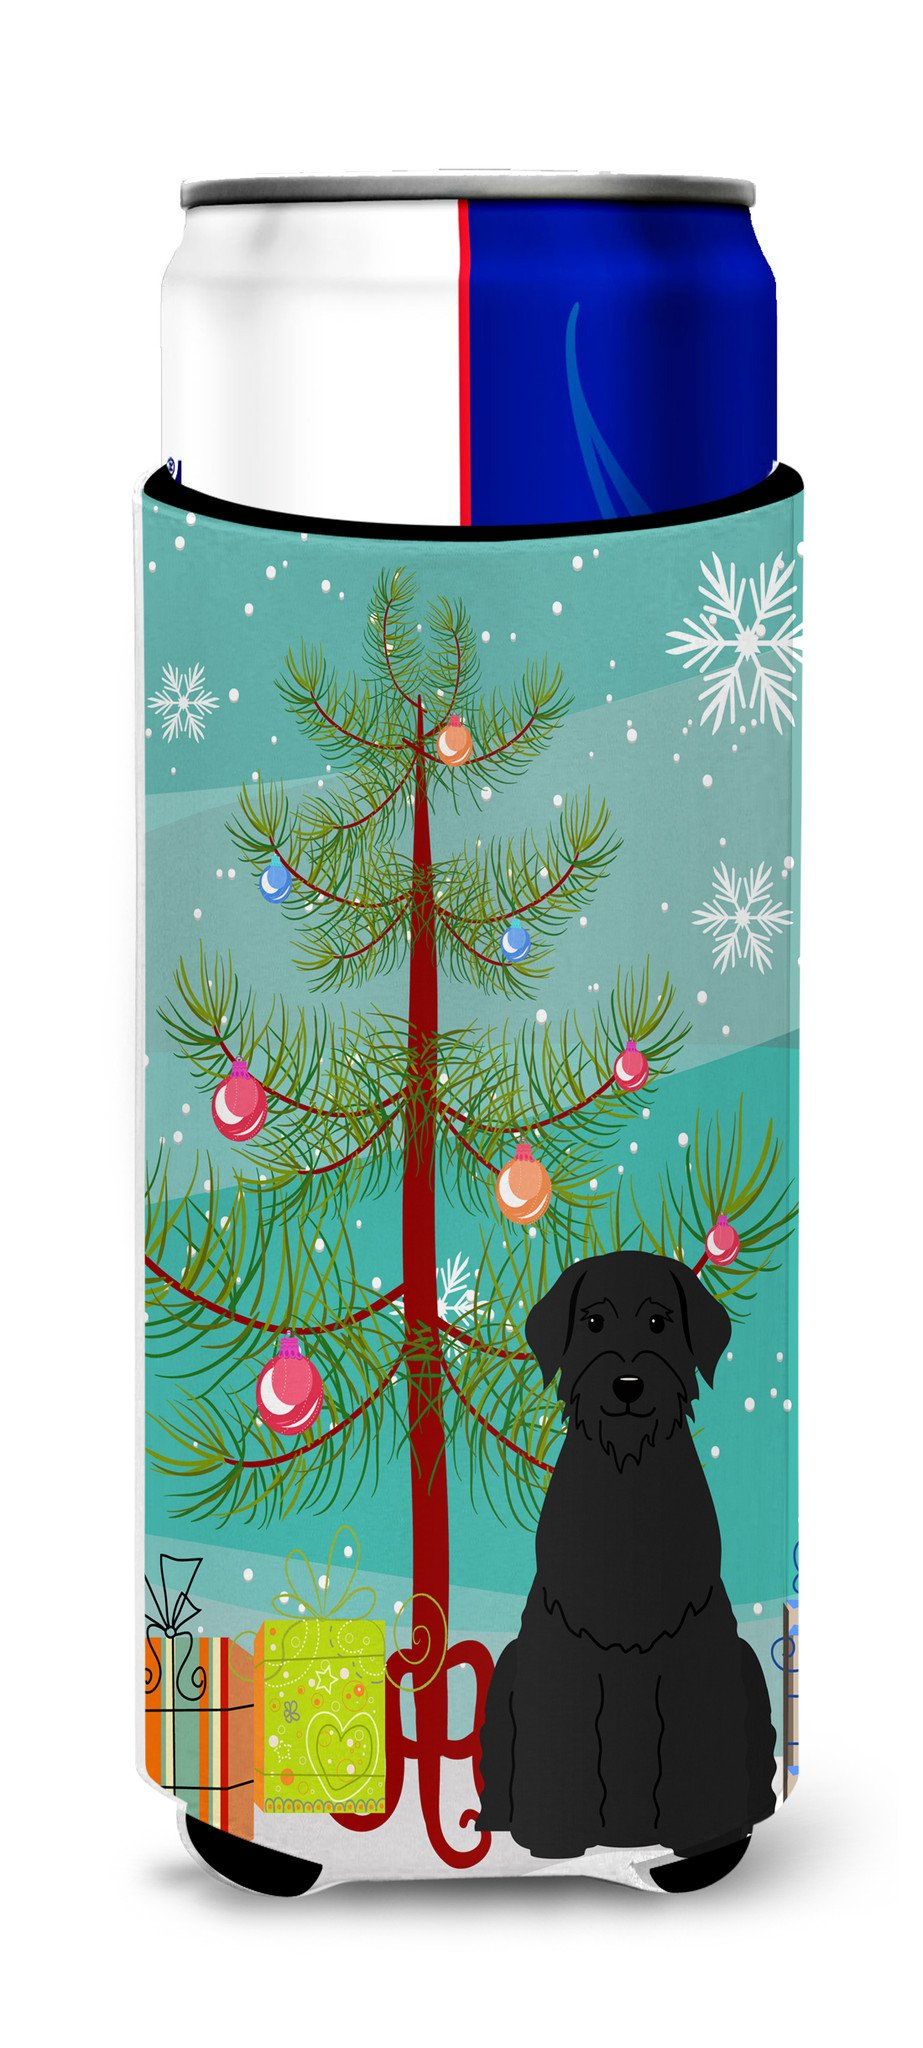 Merry Christmas Tree Giant Schnauzer Michelob Ultra Hugger for slim cans BB4191MUK by Caroline's Treasures